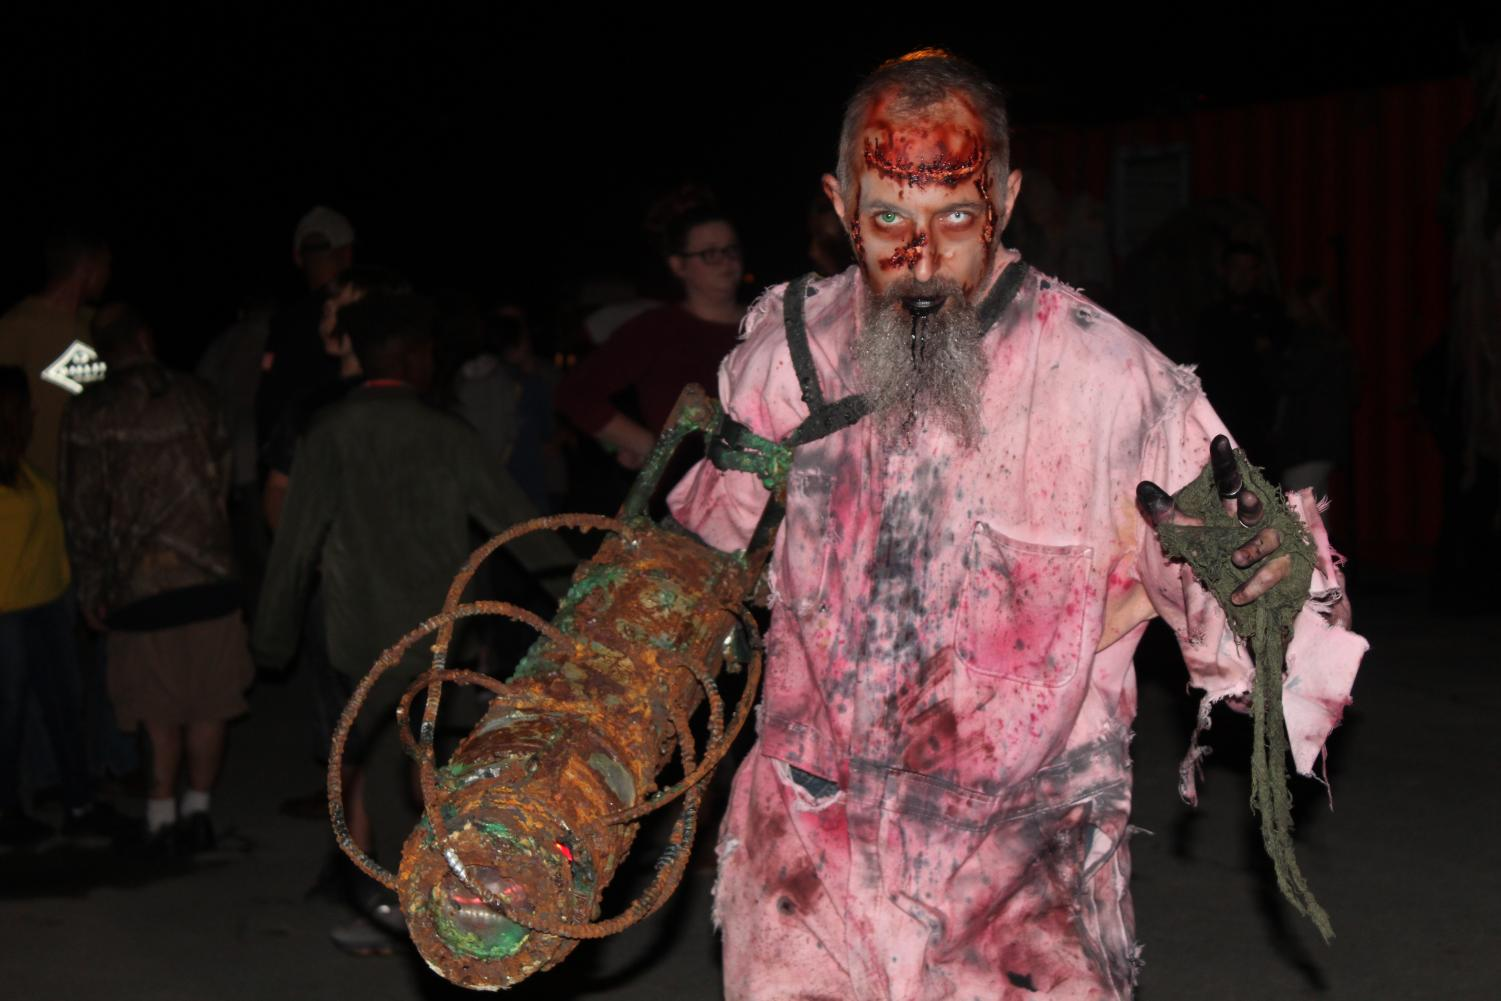 Portraying a deceased patient from a Psych ward, the actor crept around scaring people as they waited in line. From the different color eyes, to the bloody stitching across his face the actor fulfilled his role.